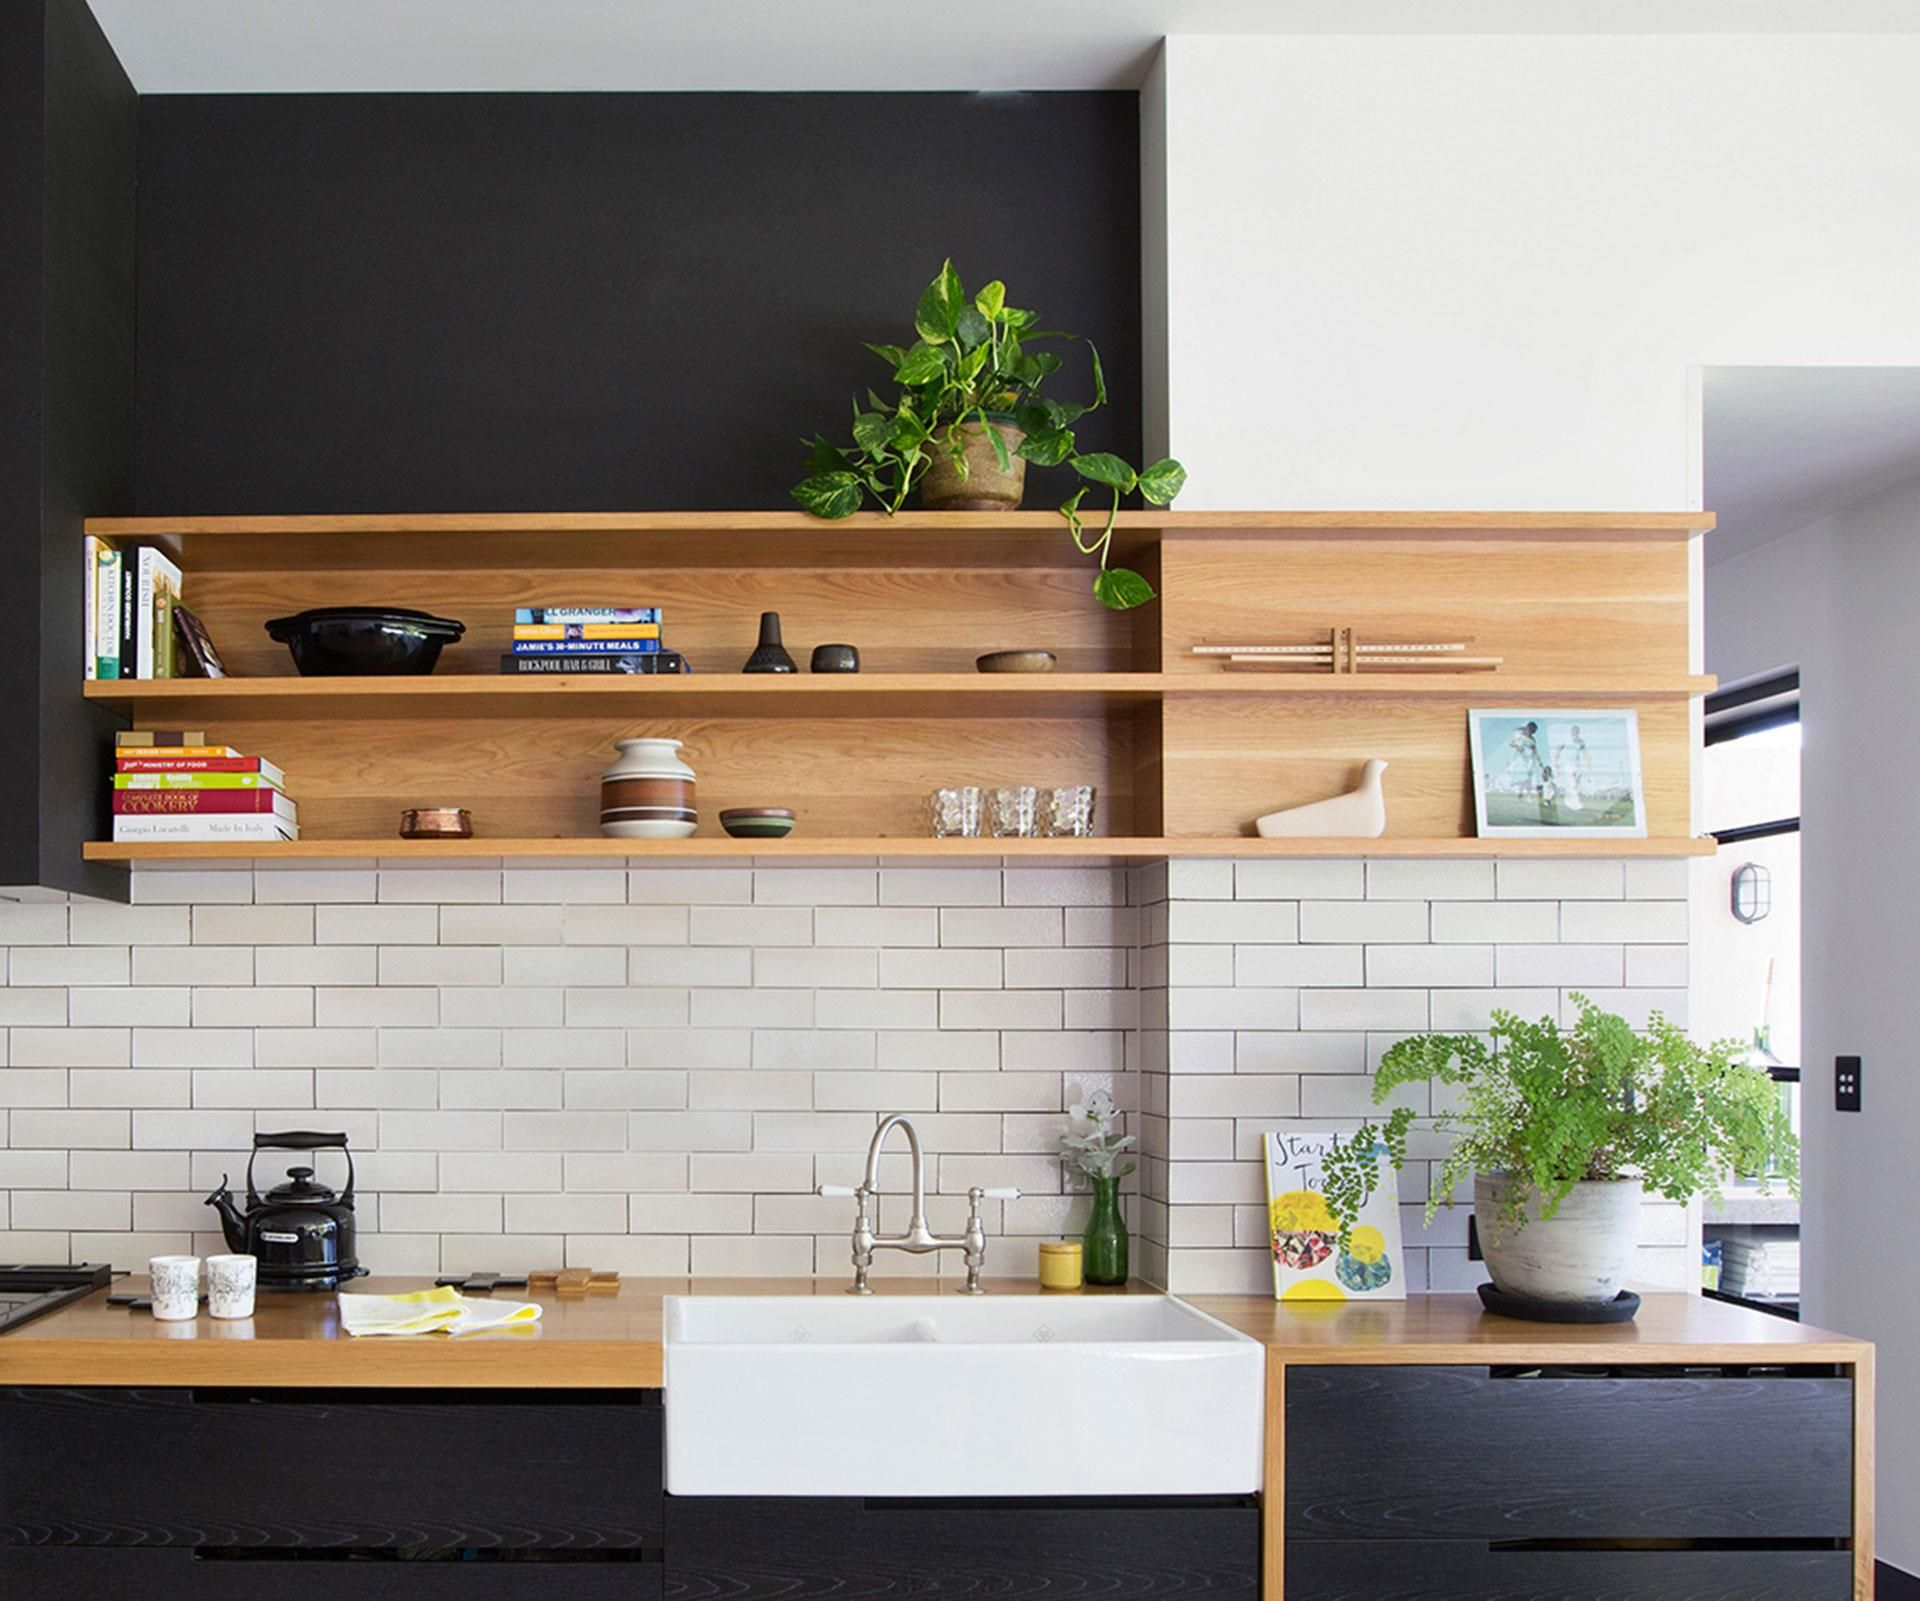 kitchen designs adelaide. matching mod cons with traditional style, this adelaide kitchen features period touches, modern black designs